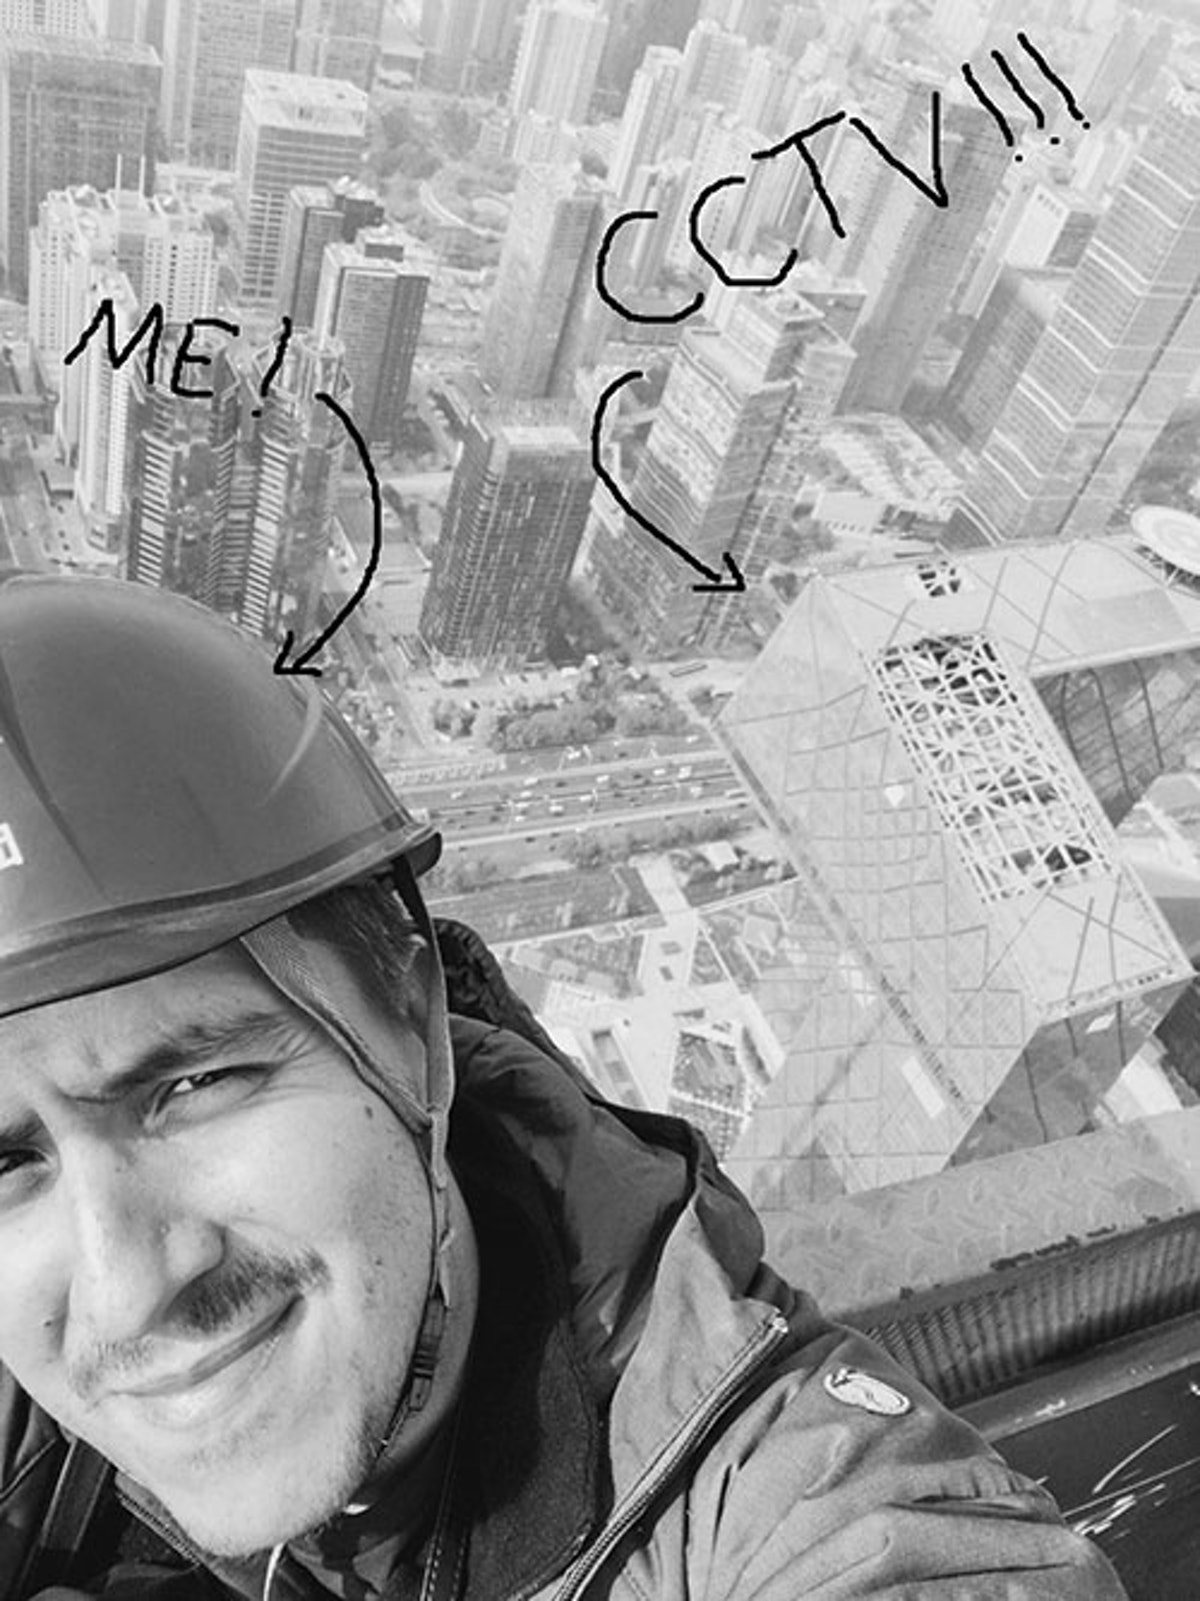 Me visiting the future tallest building in Beijing